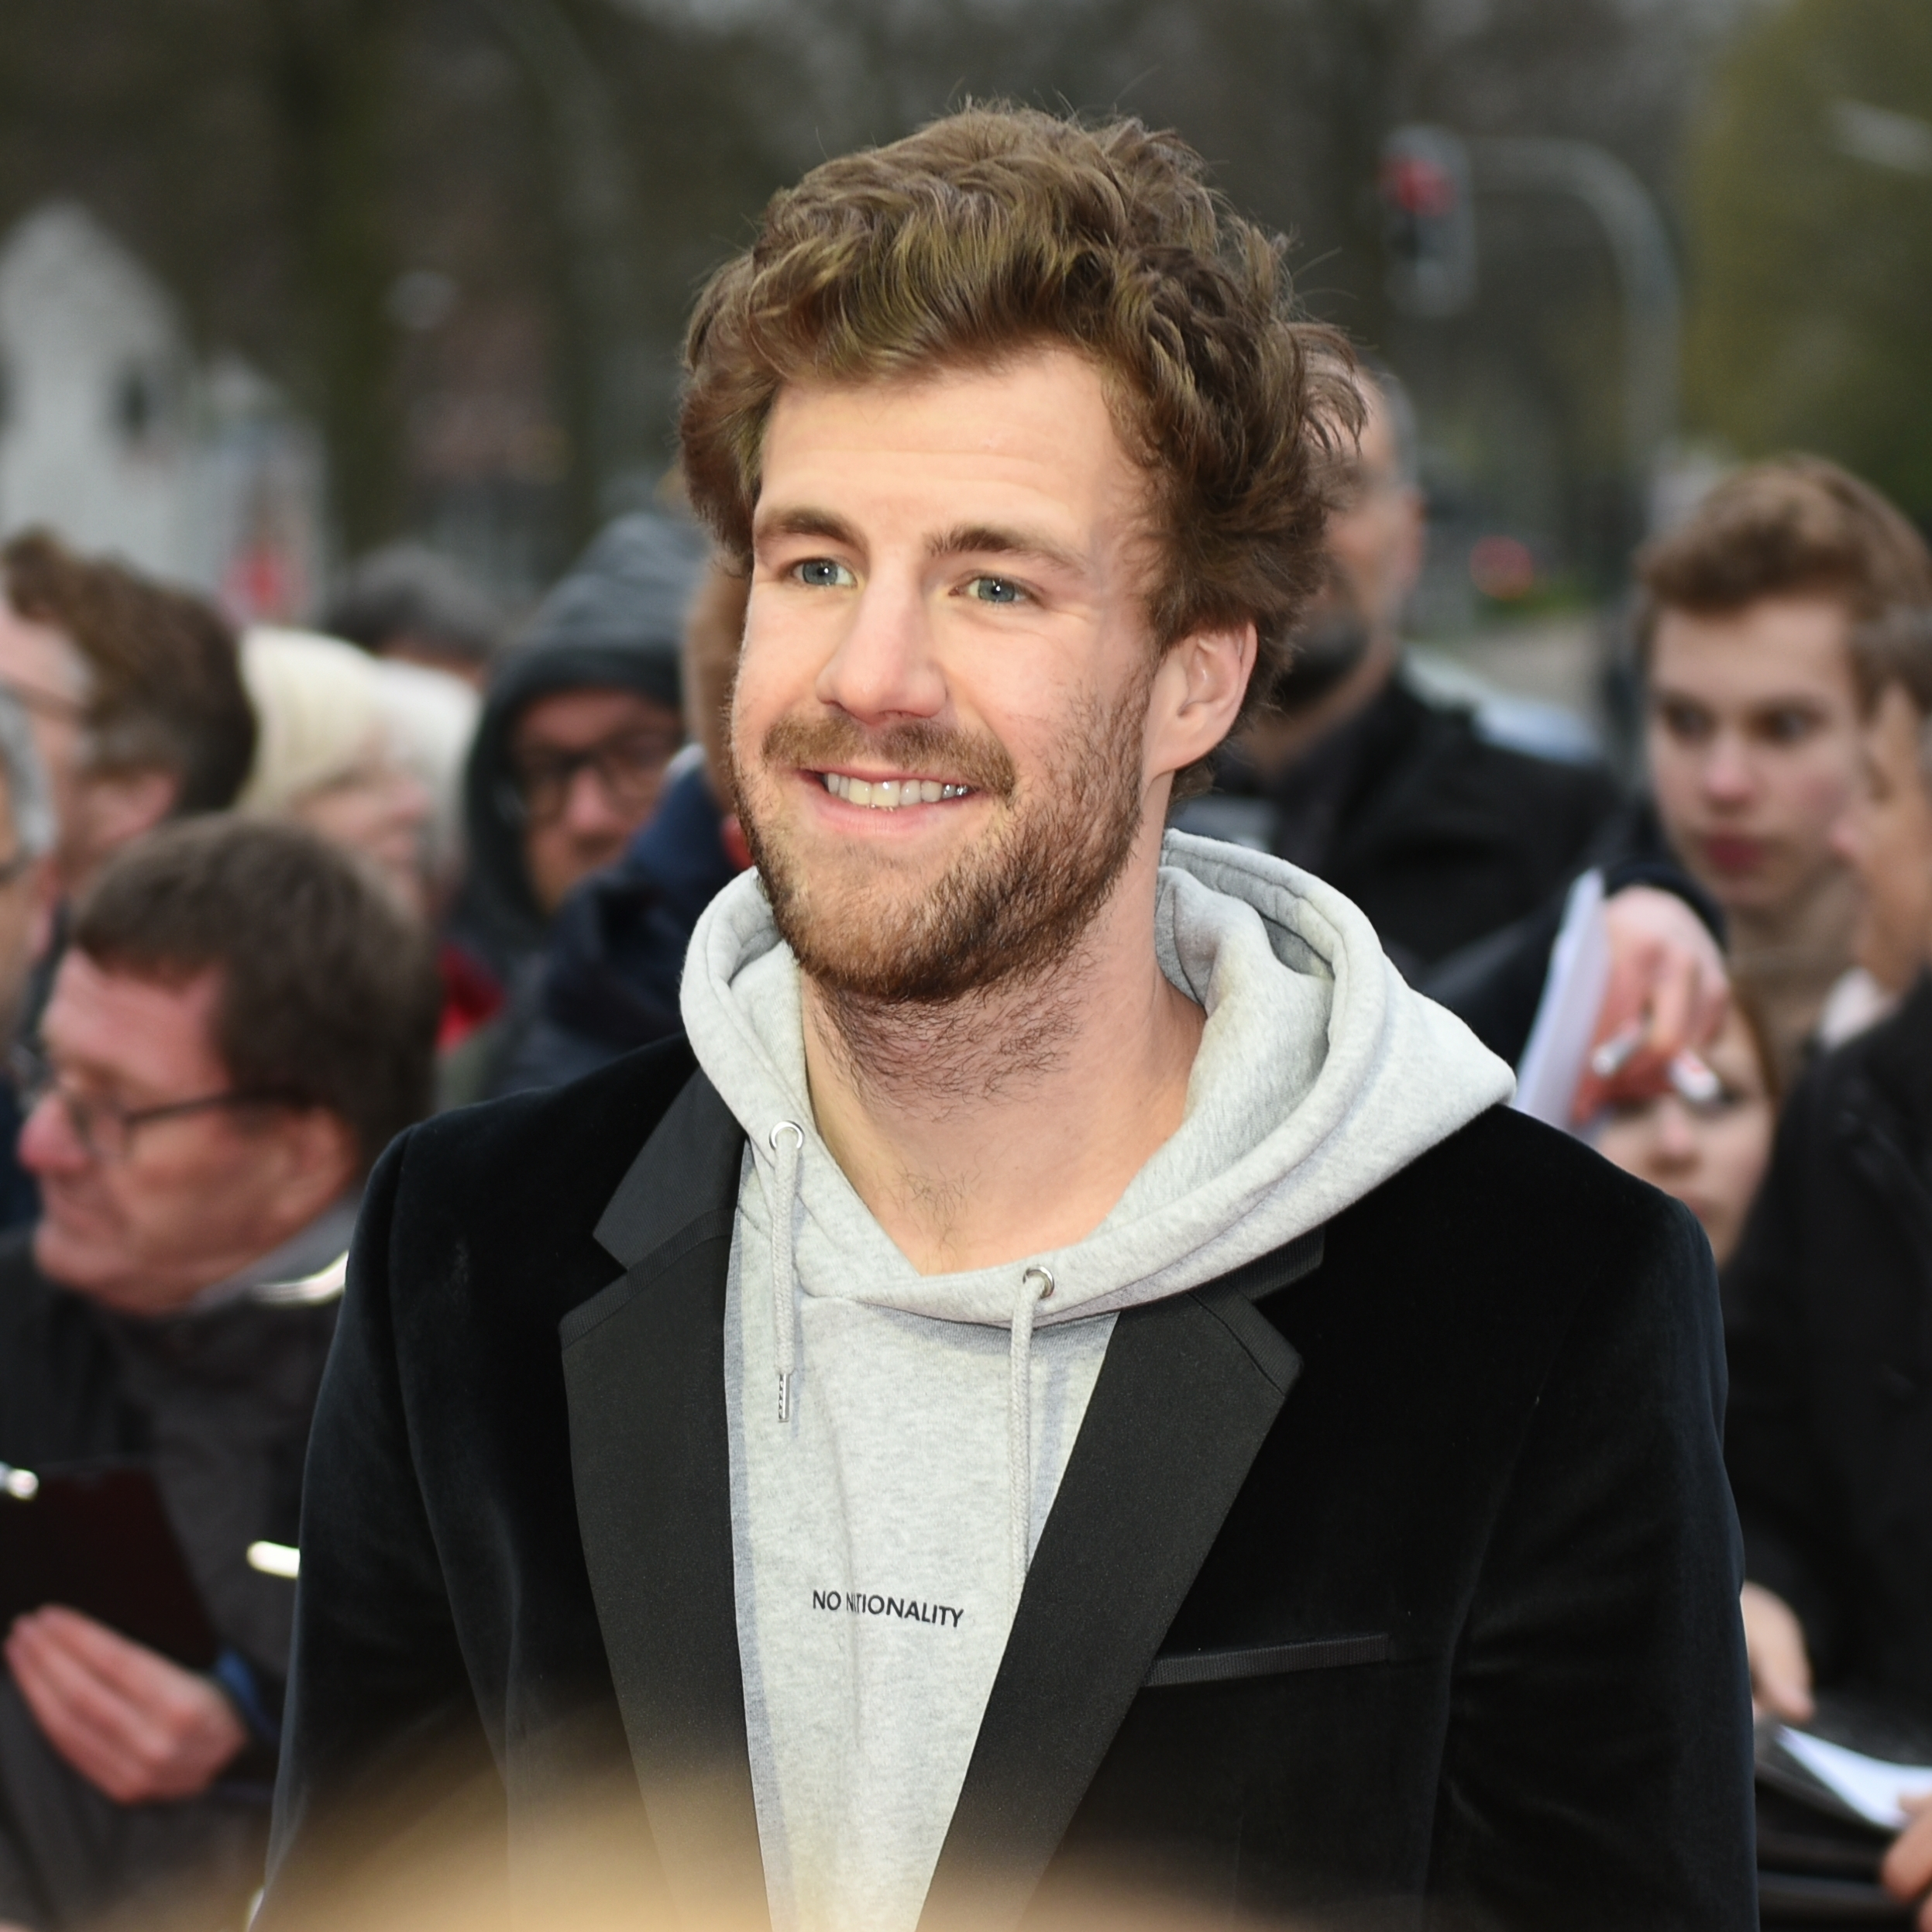 Luke mockridge koblenz 2020